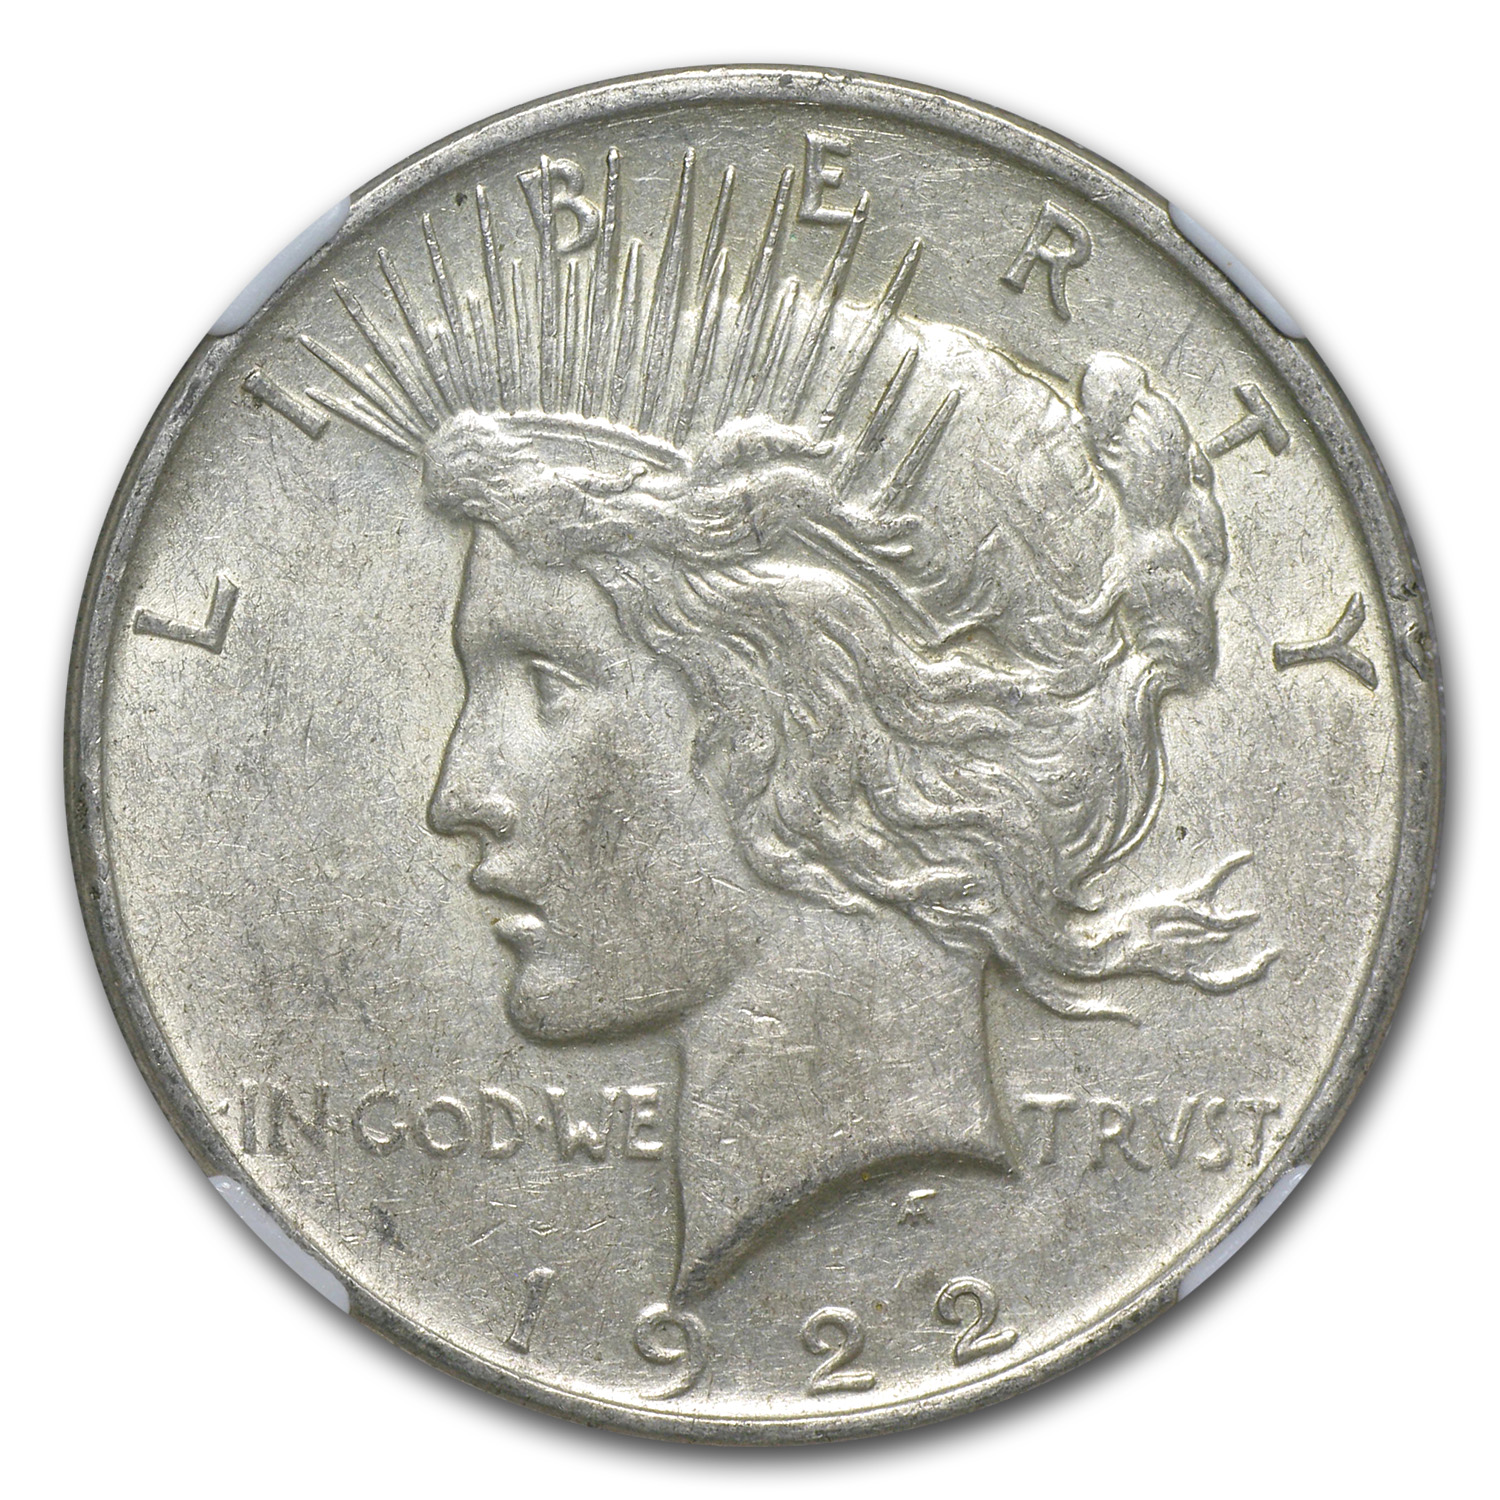 1922-D Peace Dollar AU-53 NGC (45 Degree CW Rotated Rev Error)